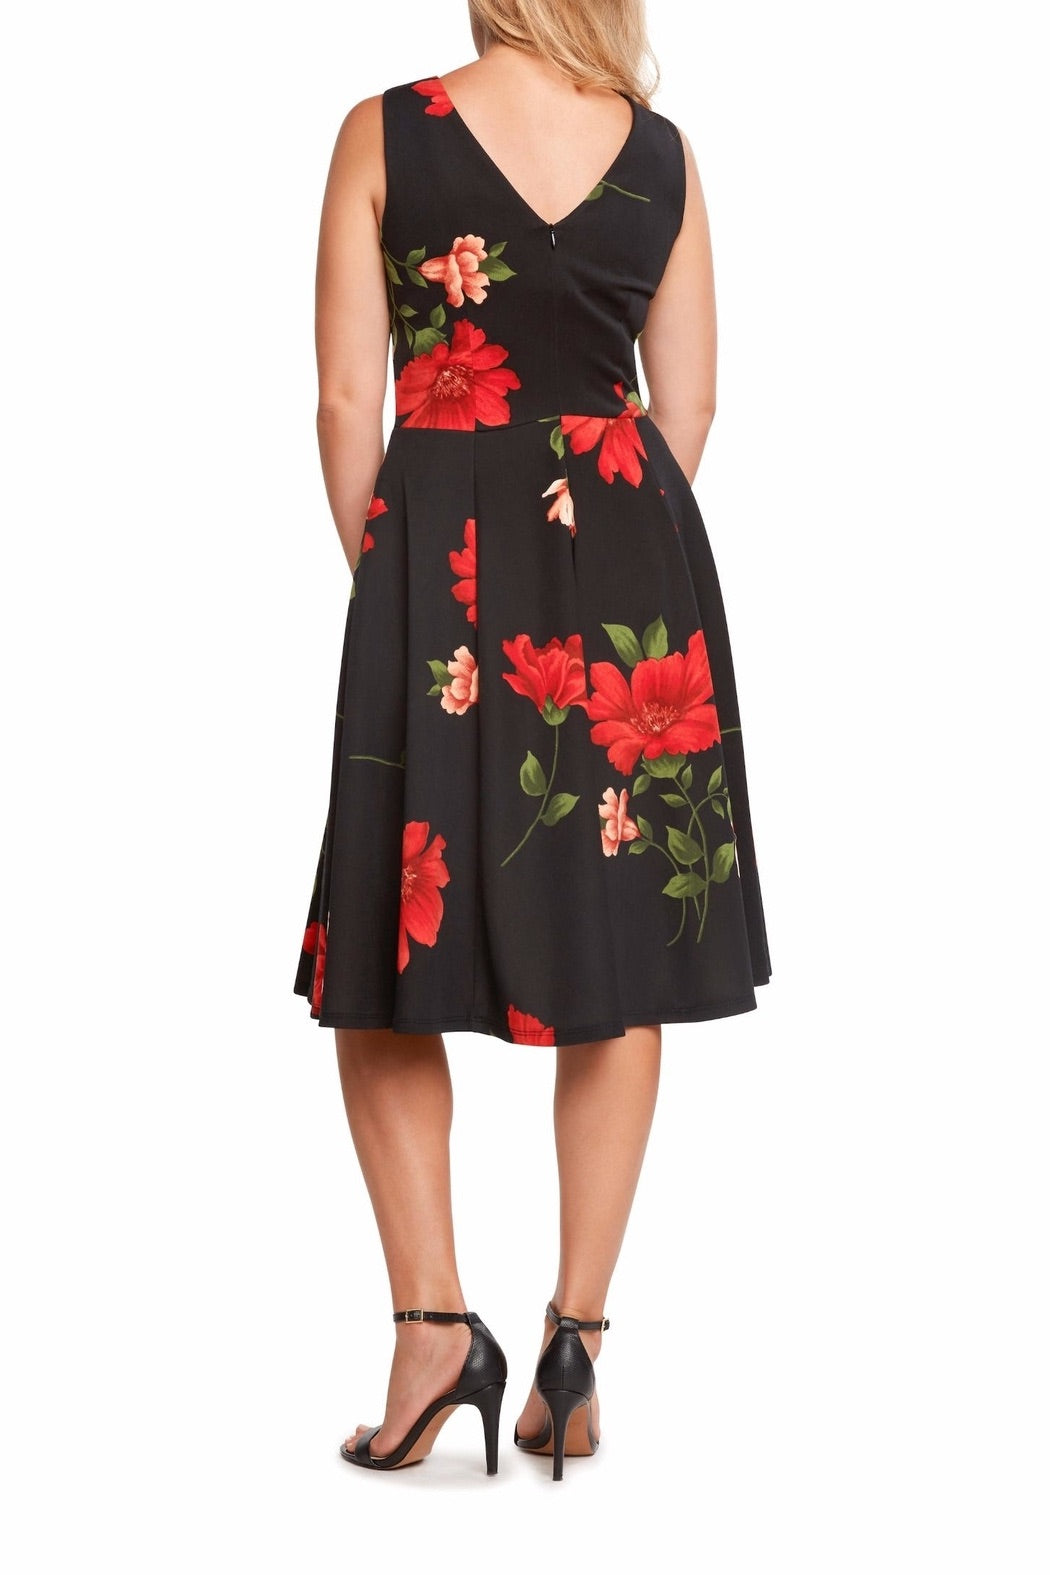 Pleated Bust Dress in Black Rose Floral